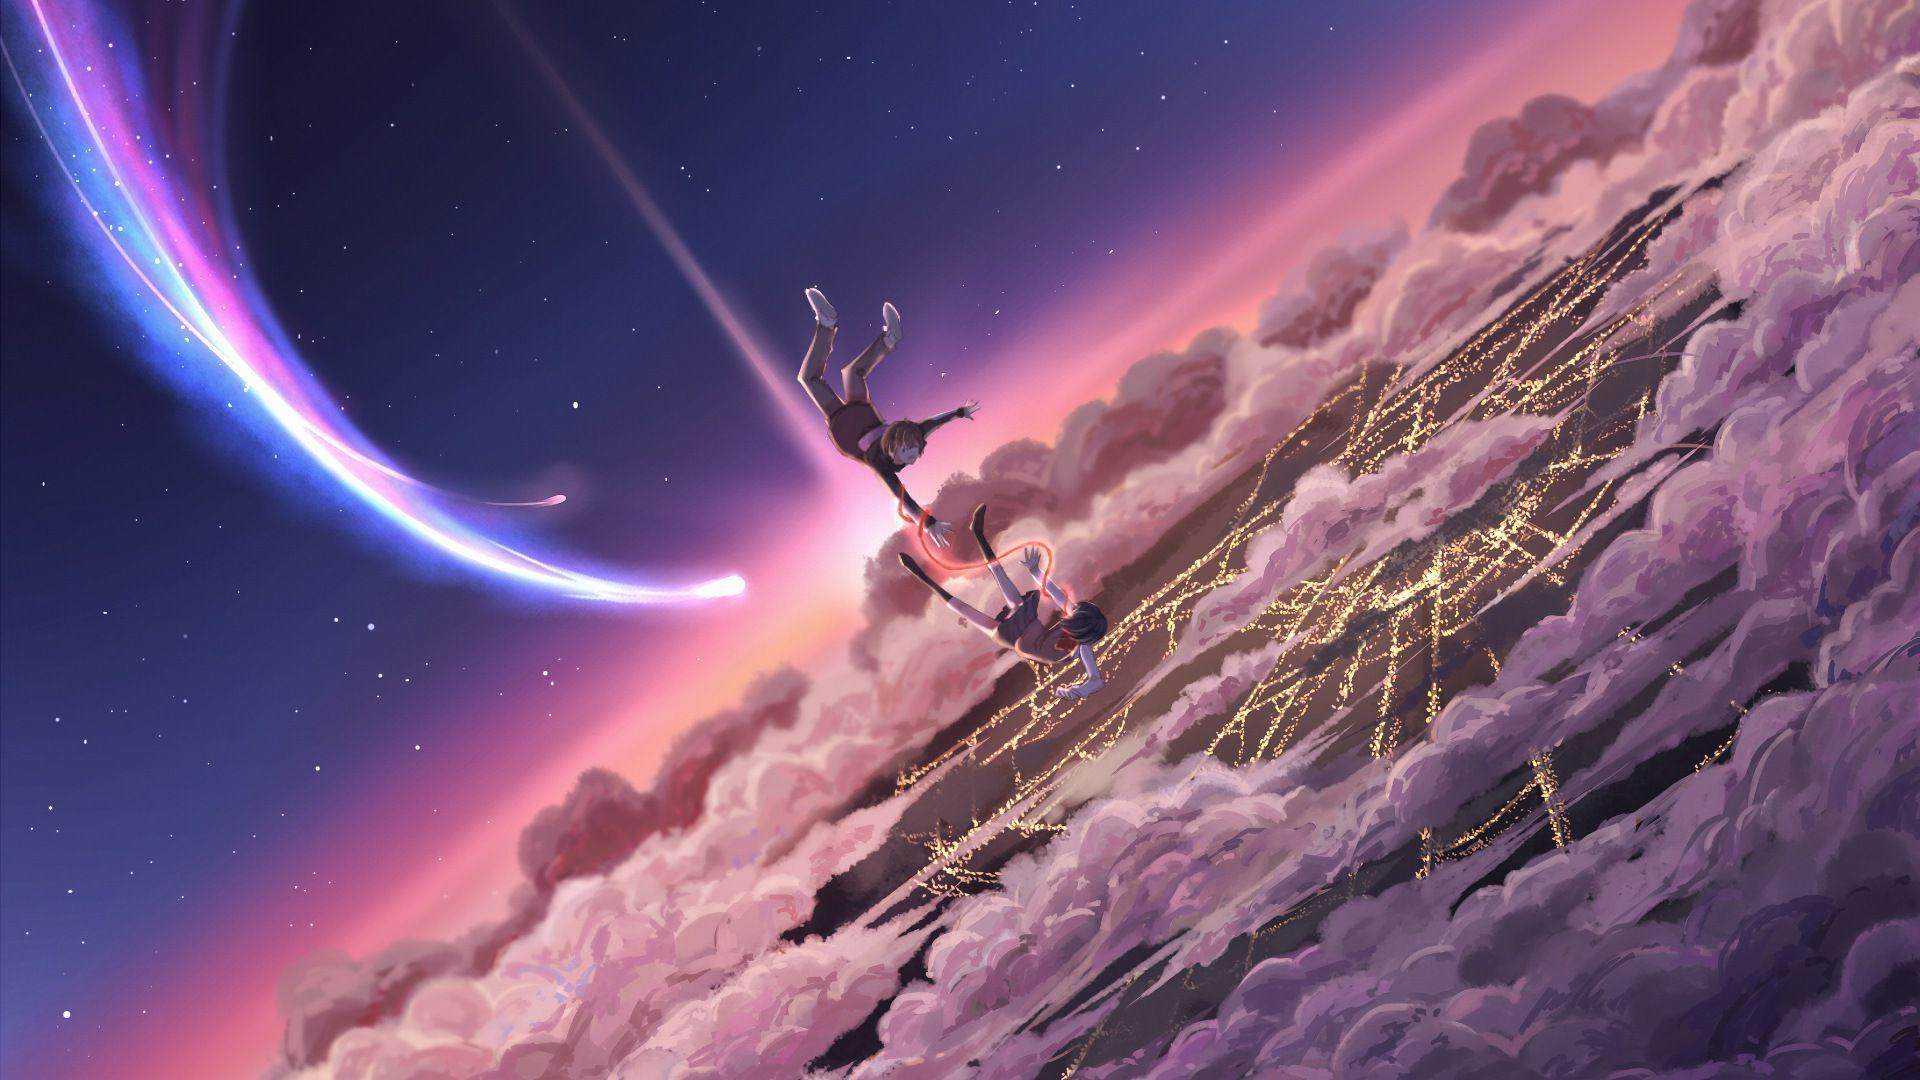 Your Name. (Kimi no Na Wa.) | Anime | 137 Wallpapers #